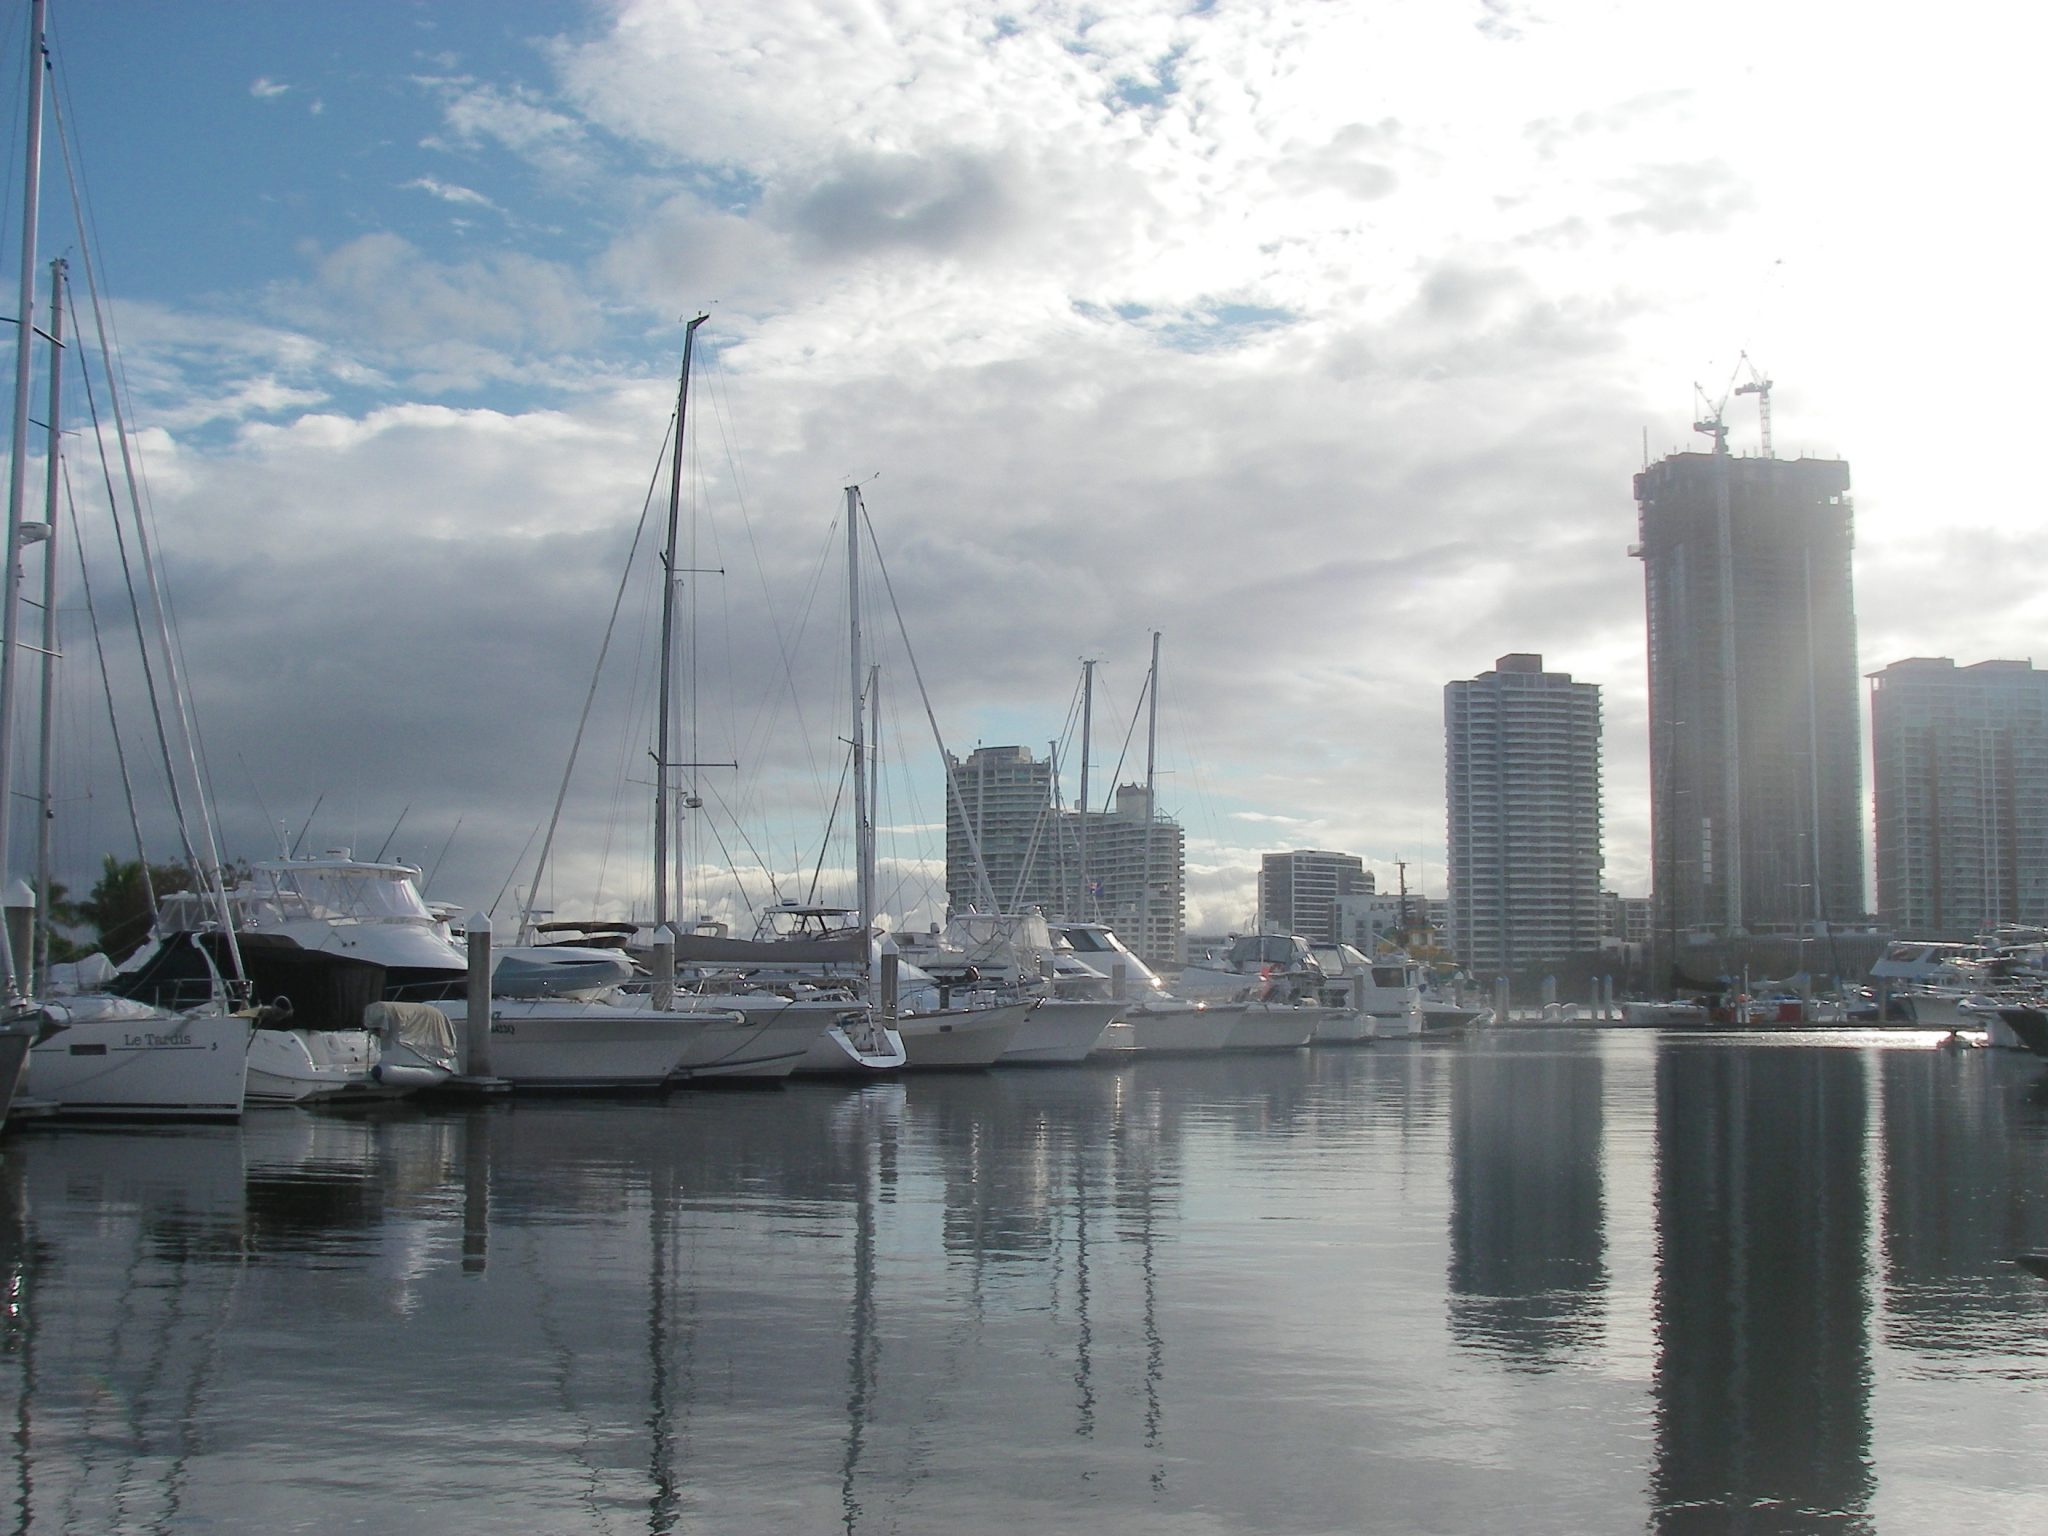 8.5. Southport Yacht Club with skyscraper condominiums in the distance. You can see Joyful's two foresails close together and her Australian courtesy flag flying